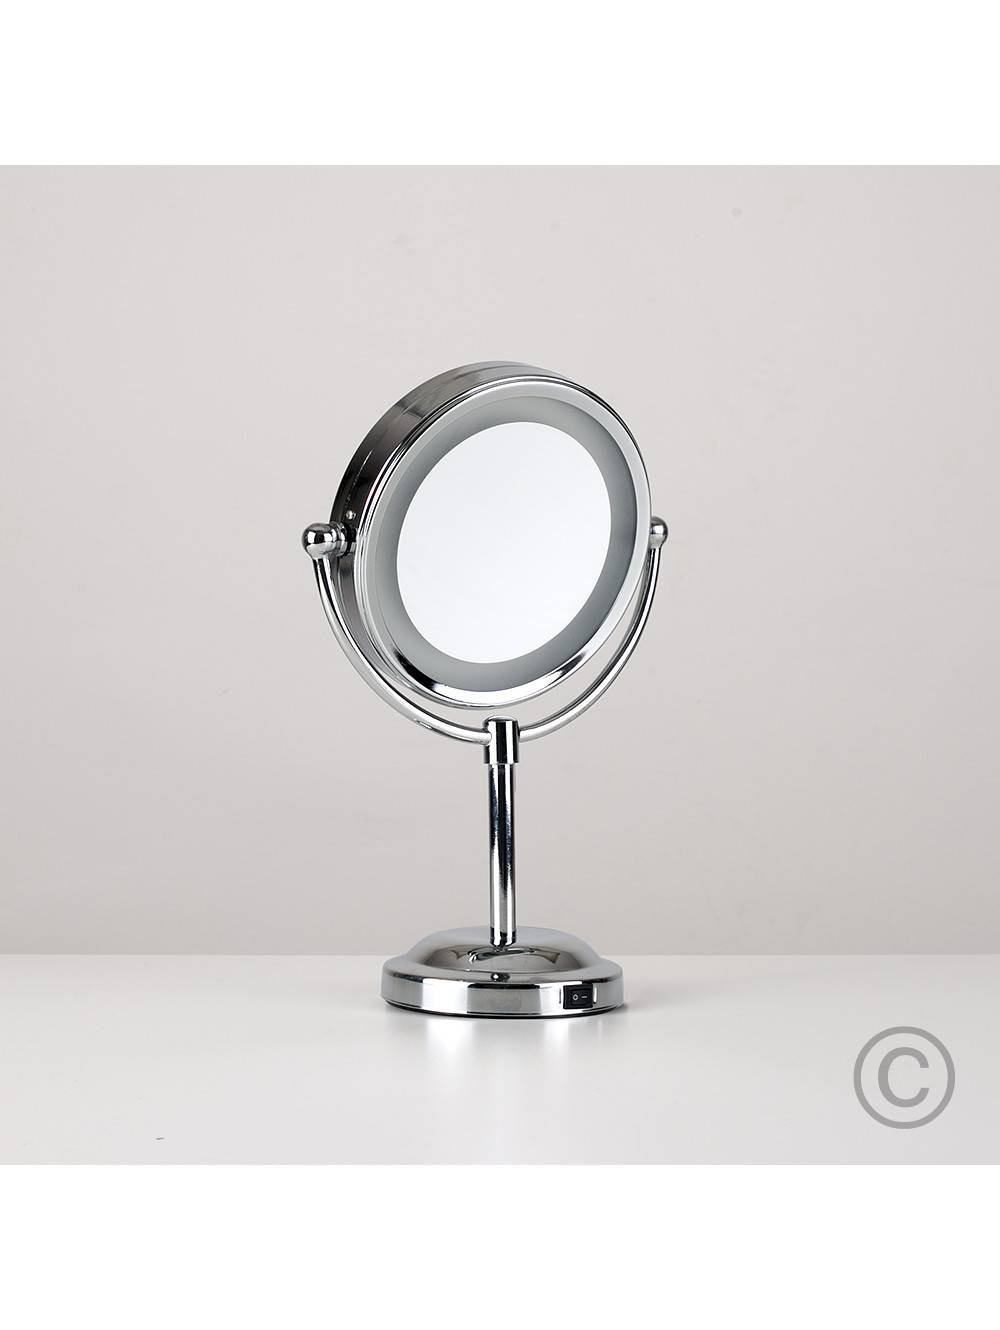 Small Round Light Up Free Standing Mirror | Valuelights For Small Free Standing Mirrors (Photo 10 of 25)